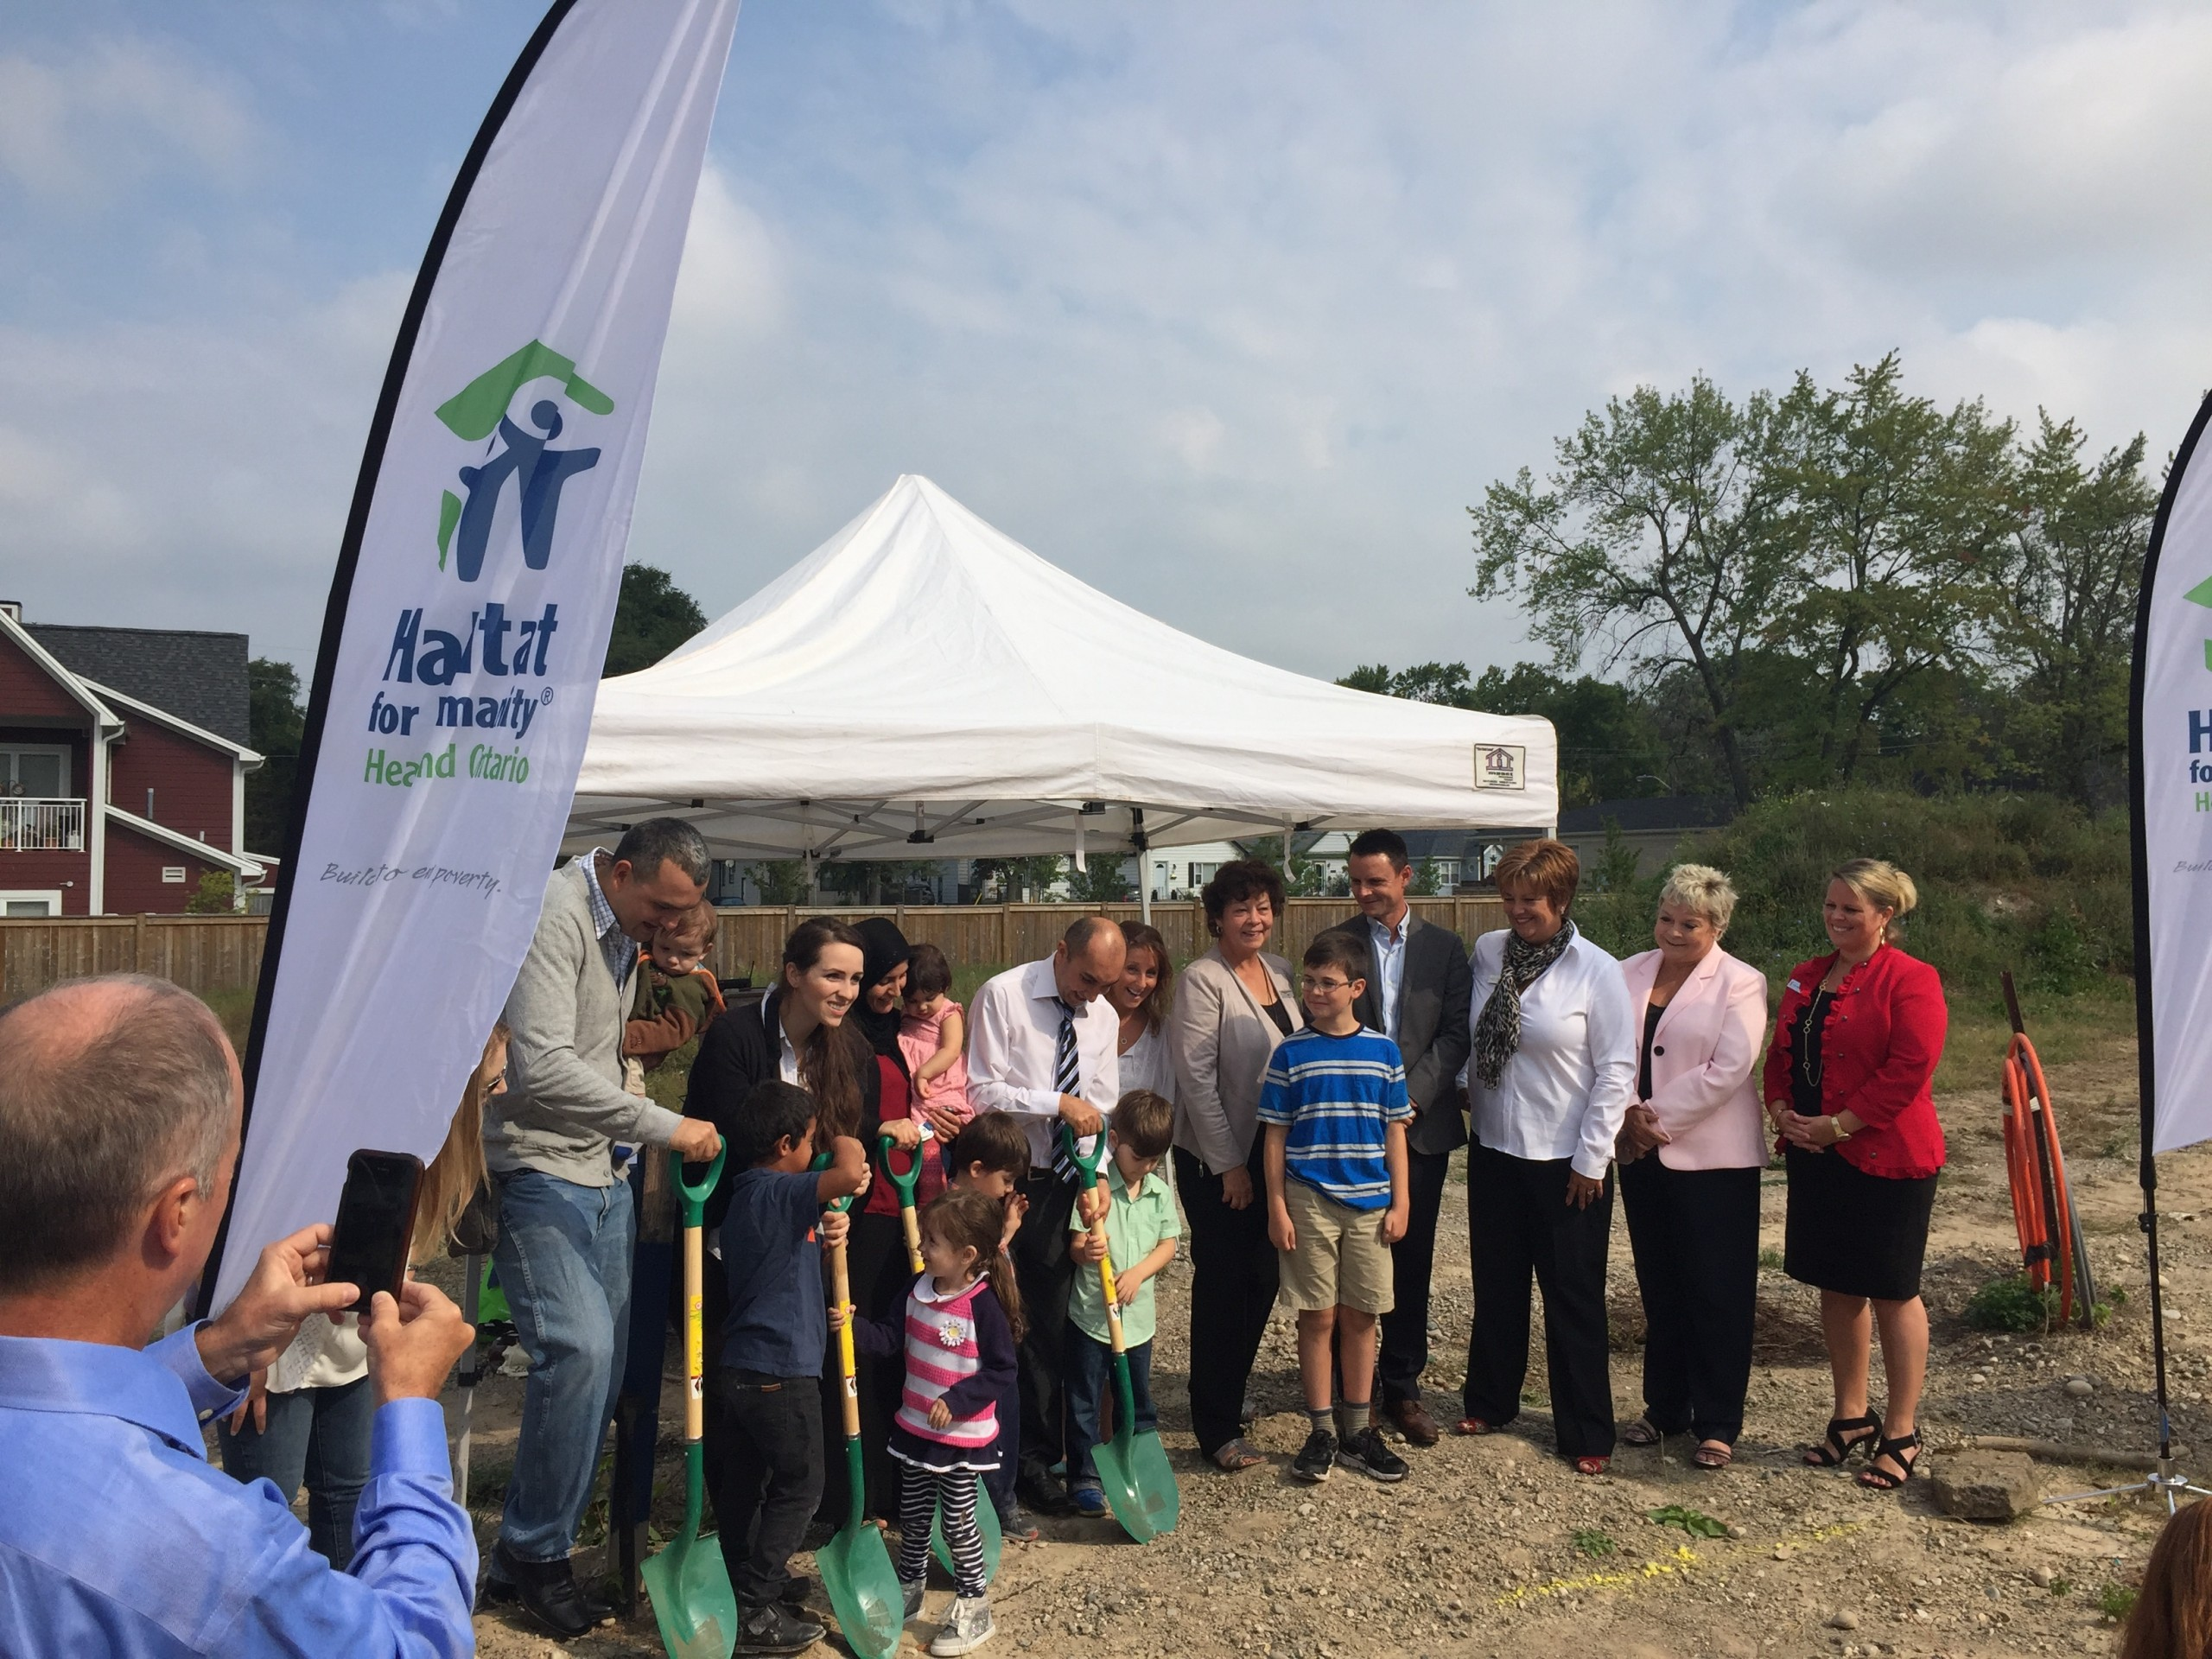 Habitat For Humanity ground breaking event